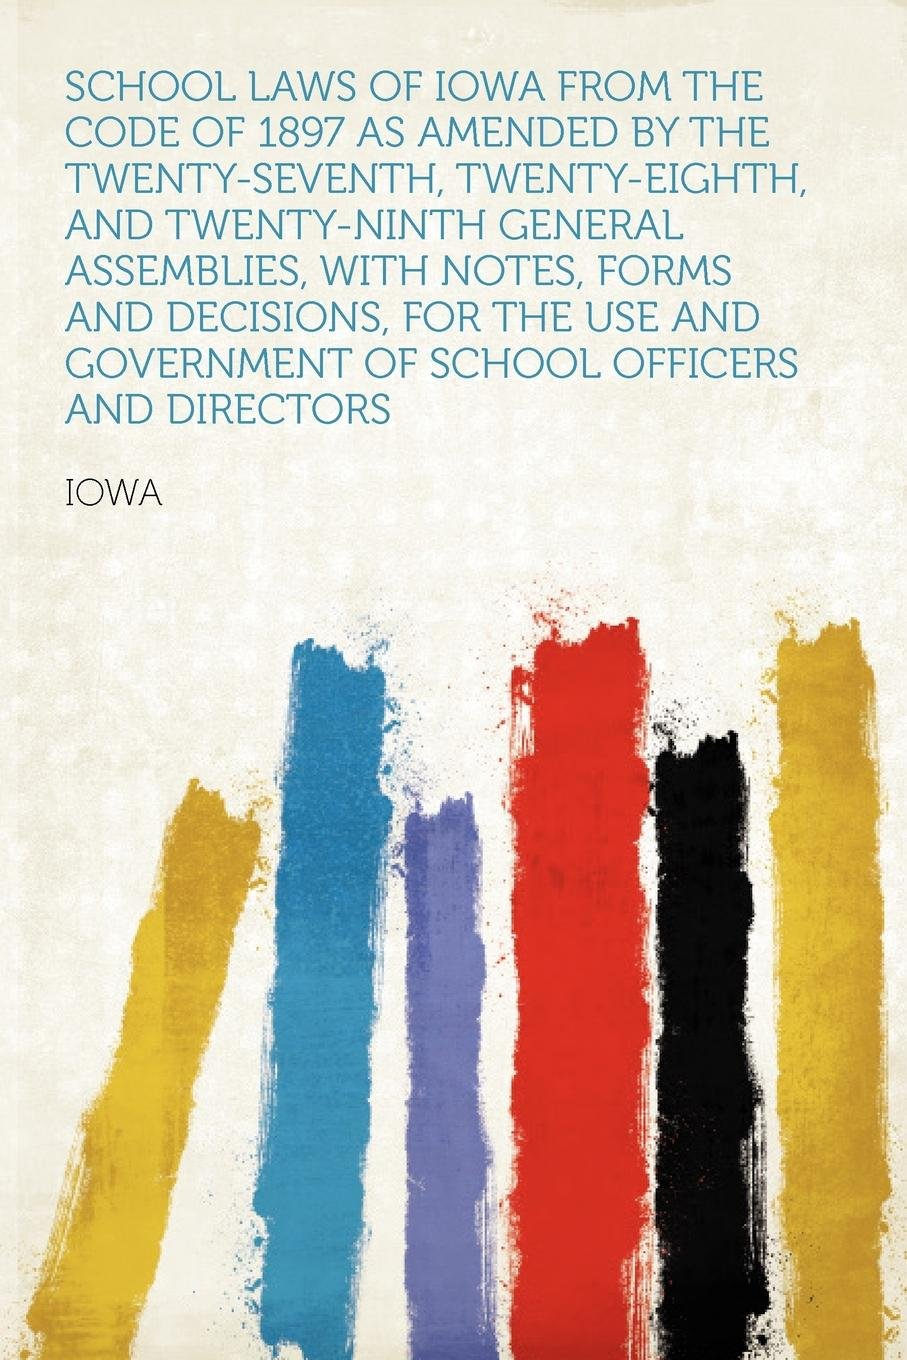 School Laws of Iowa From the Code of 1897 as Amended by the Twenty-seventh, Twenty-eighth, and Twenty-ninth General Assemblies, With Notes, Forms and Government of School Officers and Directors PDF